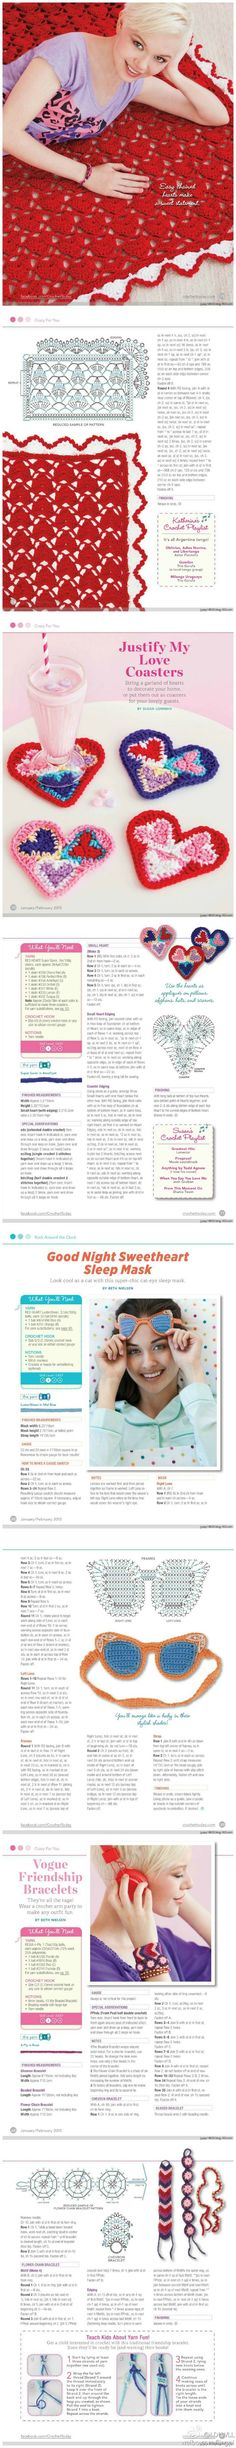 Sleeping mask included in project list.